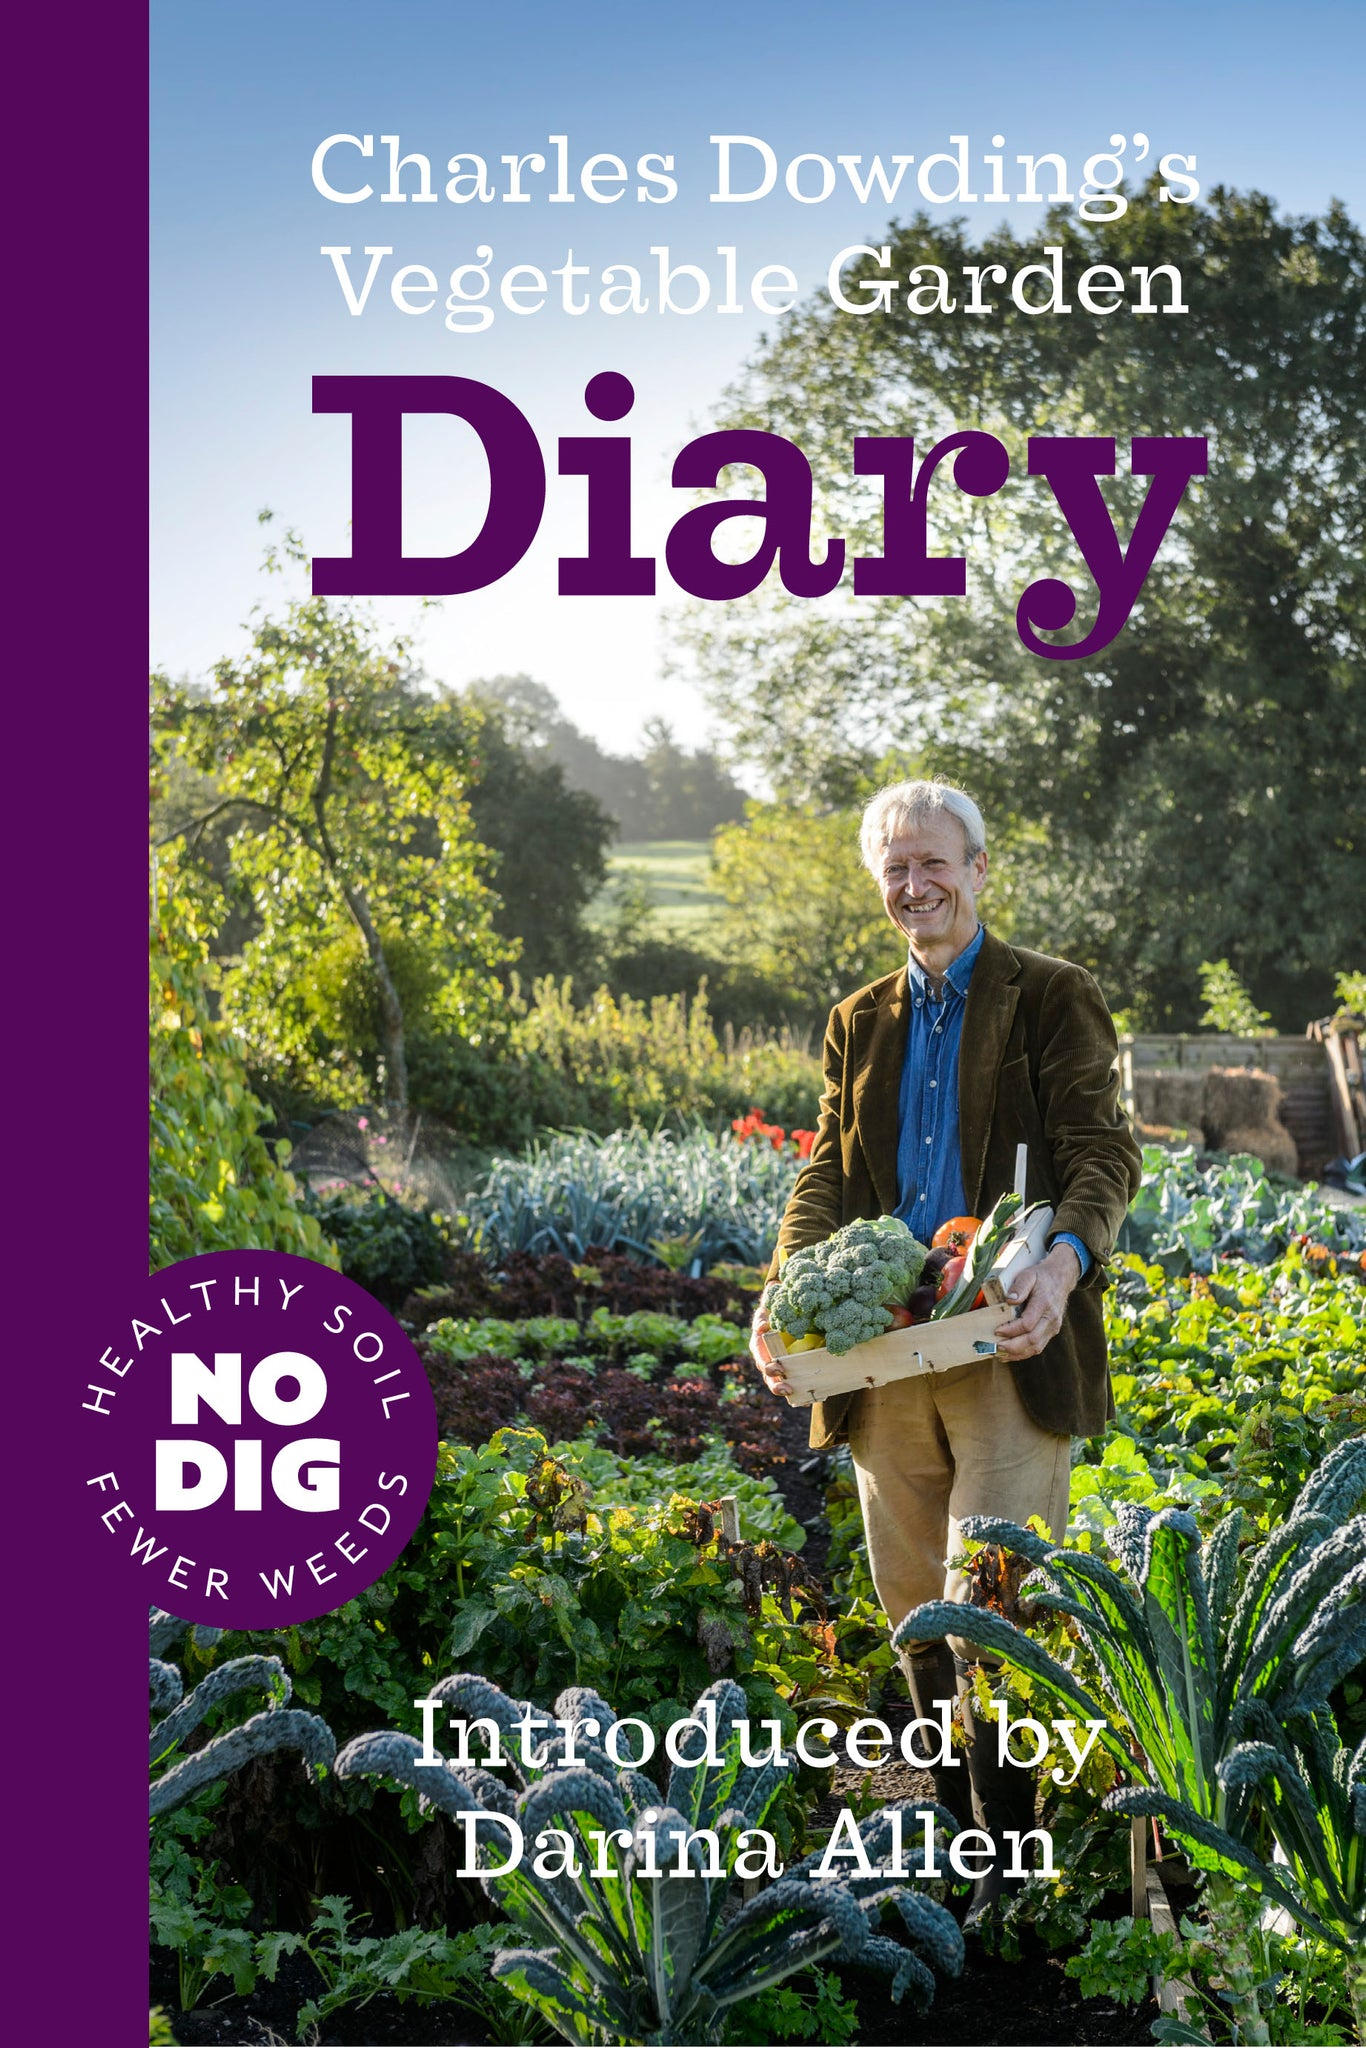 Charles Dowding's Vegetable Garden Diary - No Dig Gardening